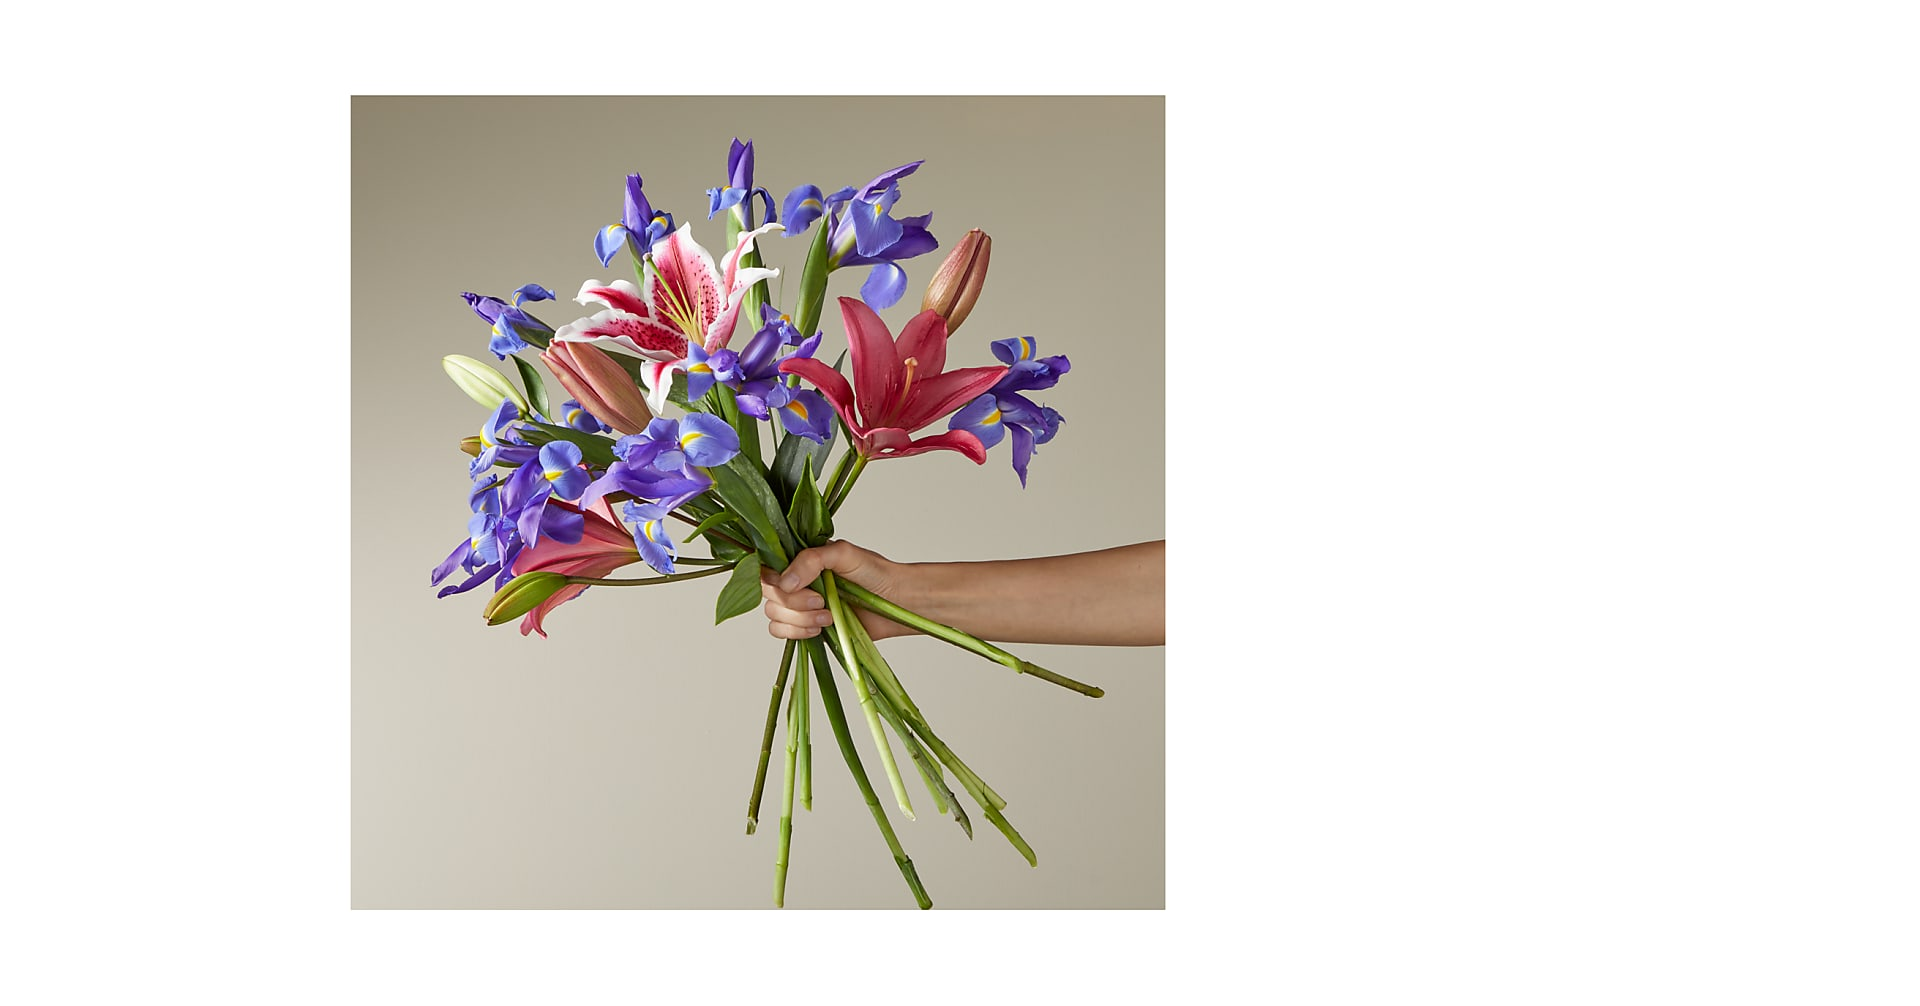 Sights of Spring Bouquet - Image 1 Of 3